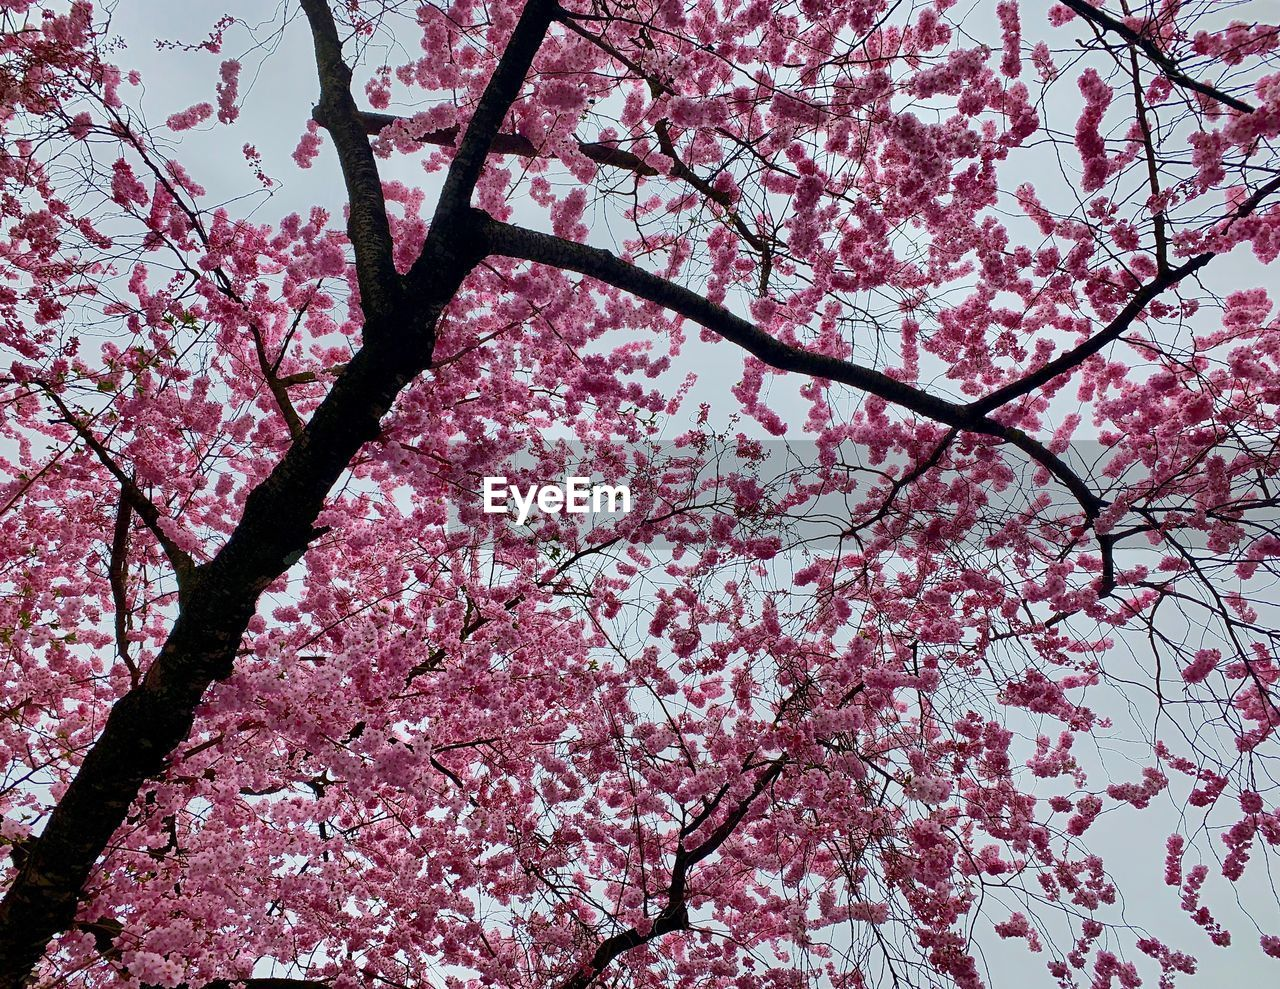 flowering plant, flower, pink color, blossom, tree, springtime, low angle view, branch, fragility, plant, freshness, beauty in nature, cherry blossom, growth, nature, cherry tree, vulnerability, no people, day, sky, outdoors, flower head, spring, plum blossom